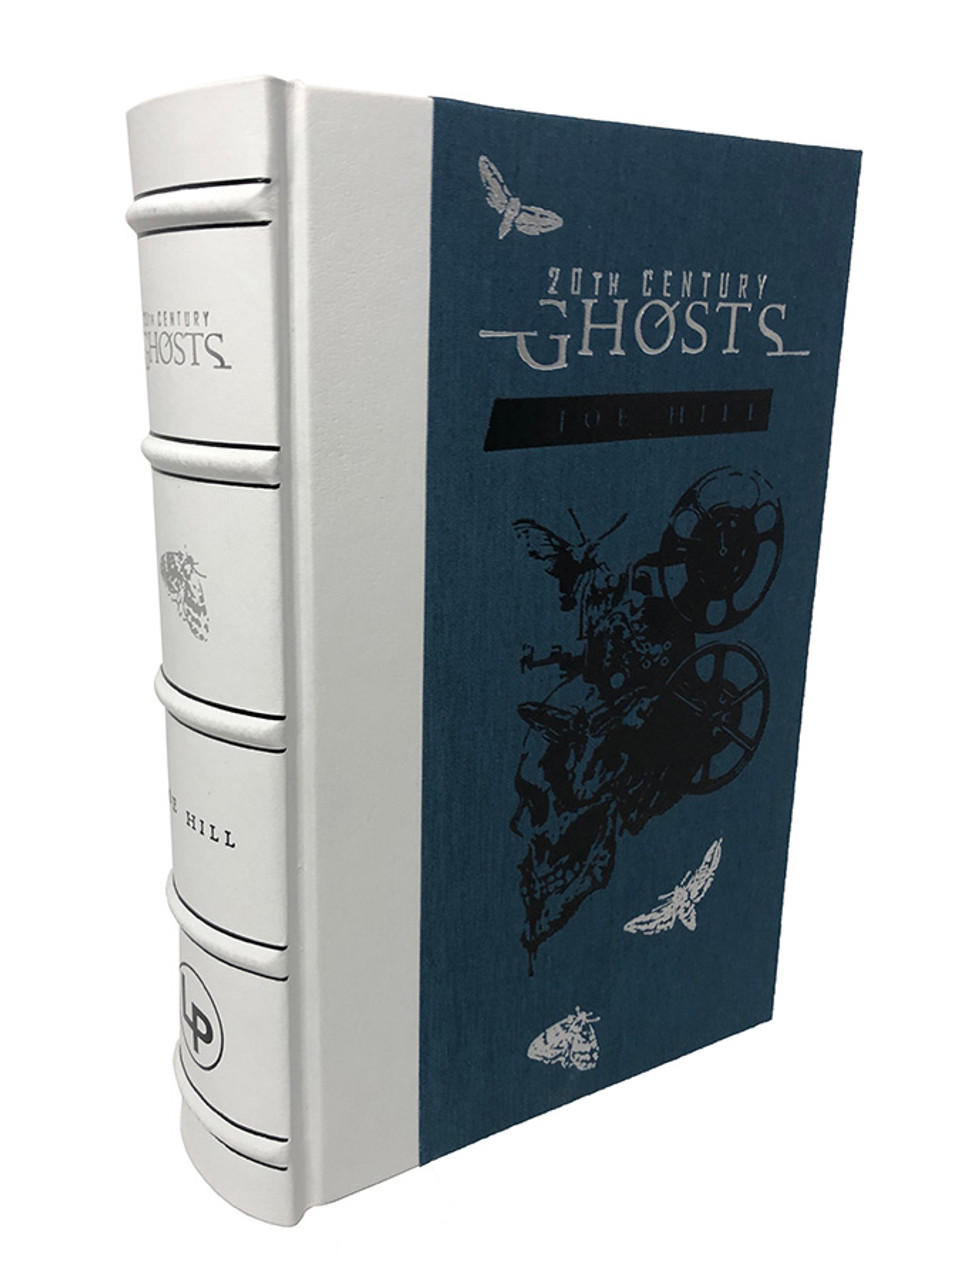 """Joe Hill """"20th Century Ghosts"""" Signed Lettered Edition """"UU"""" of only 52, Slipcased [Very Fine]"""